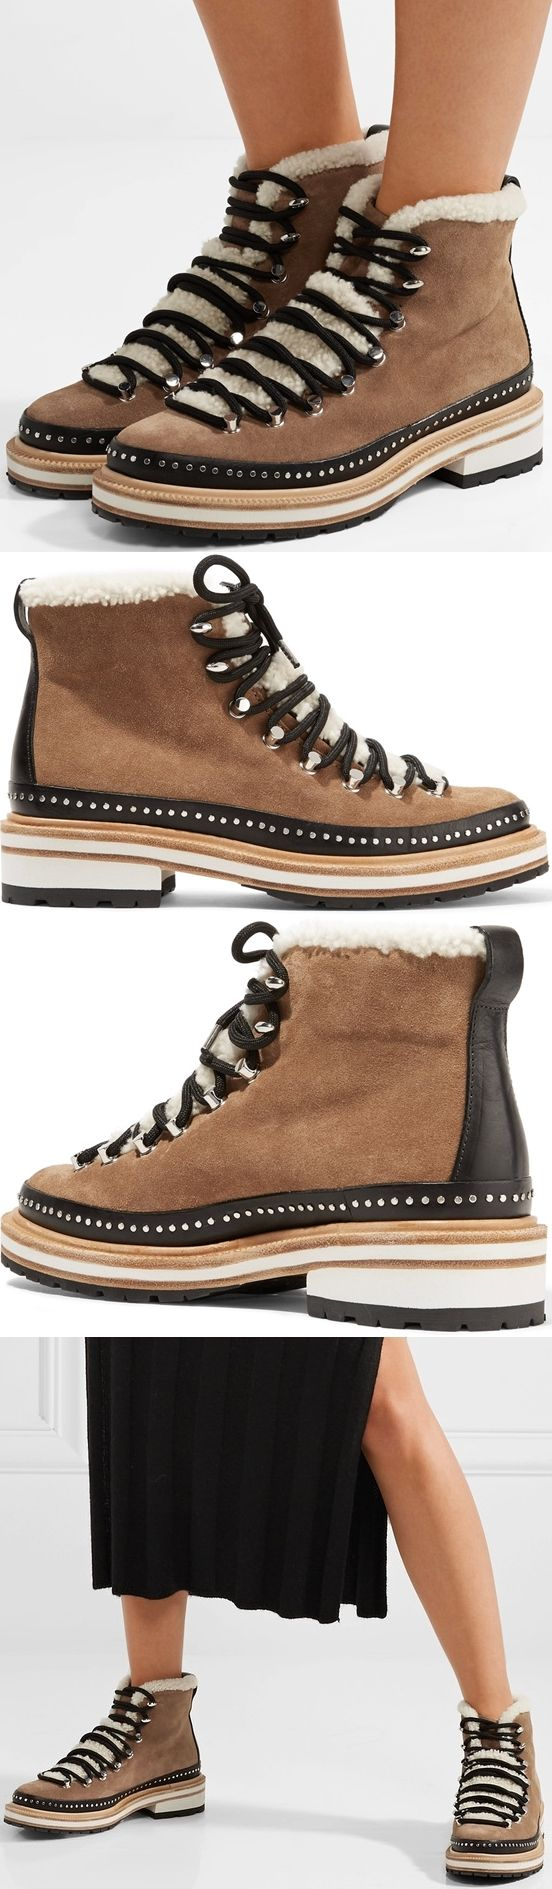 25e6b3e38a0 Hiking boots were seen on so many runways this season and instantly became  one of our favorite trends. rag & bone's 'Compass' ankle pair is made from  ...